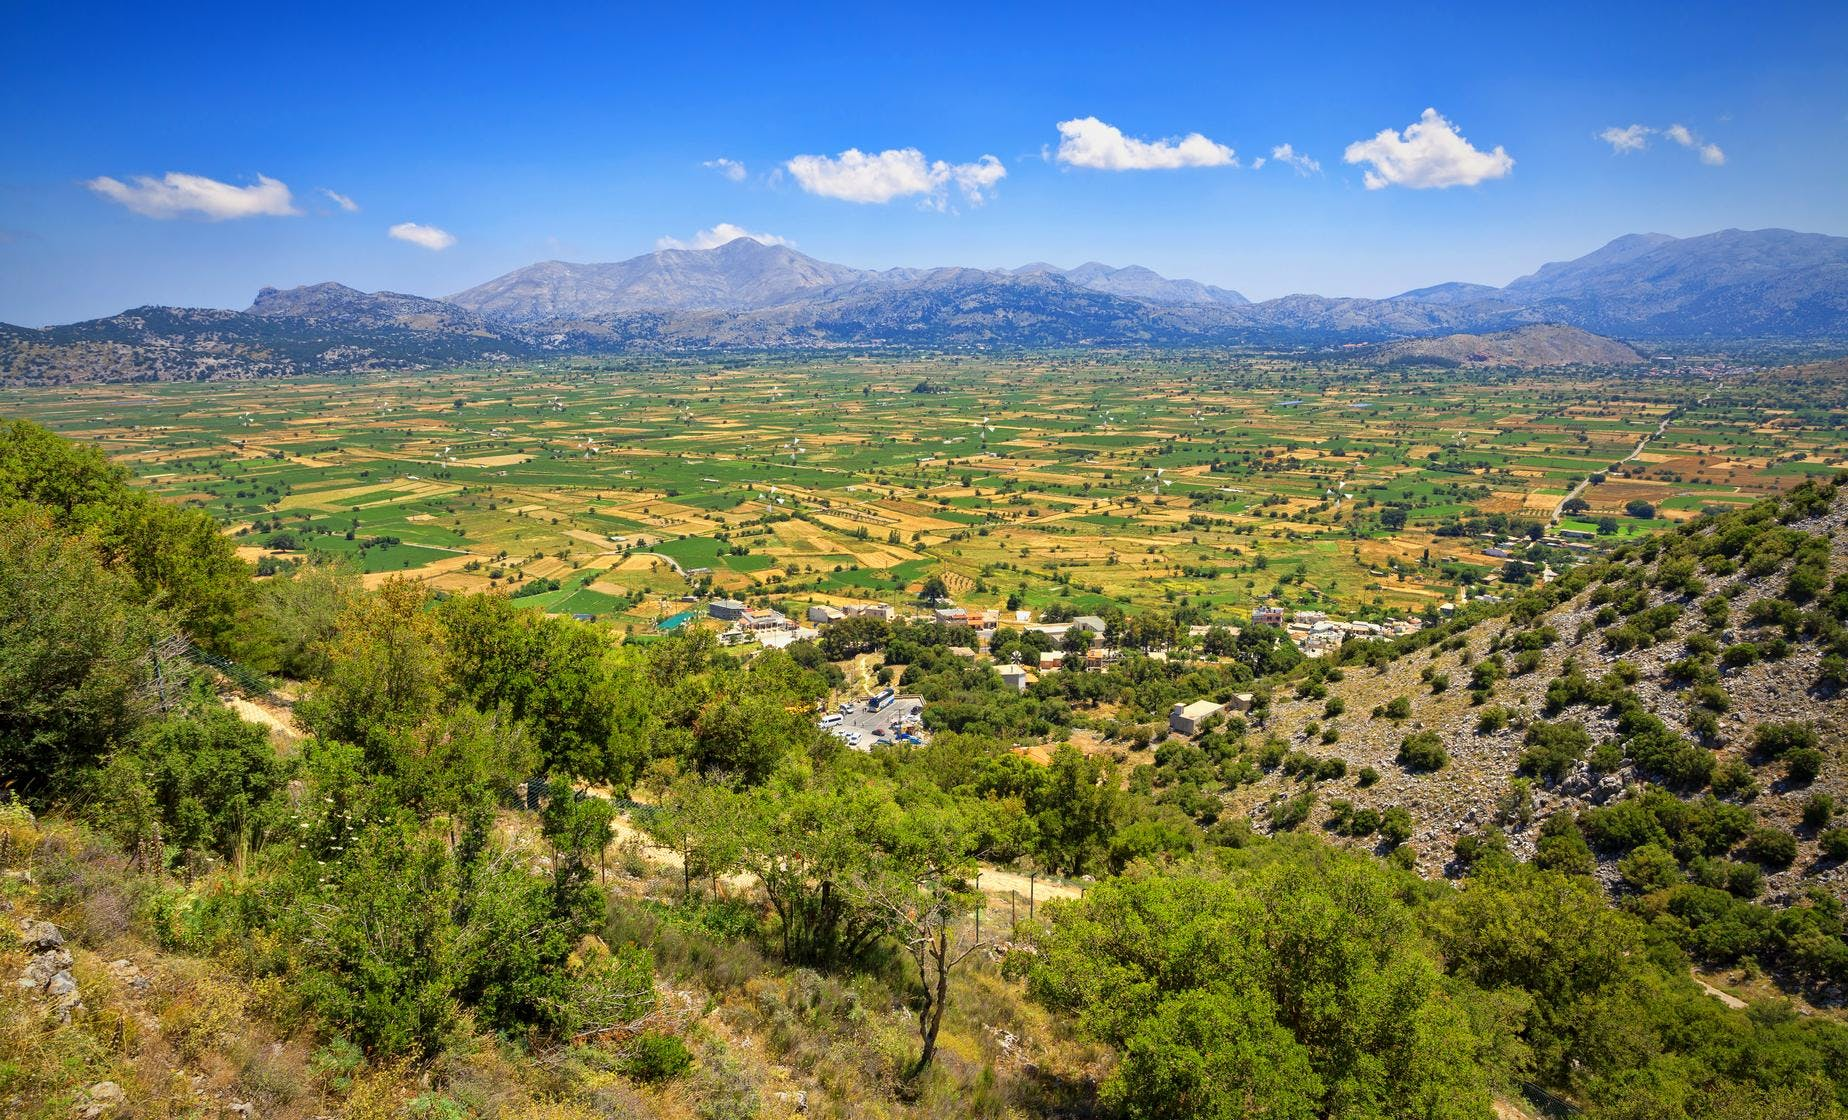 Private Tour to the Lassithi Plateau, Cave of Zeus and Lassinthos